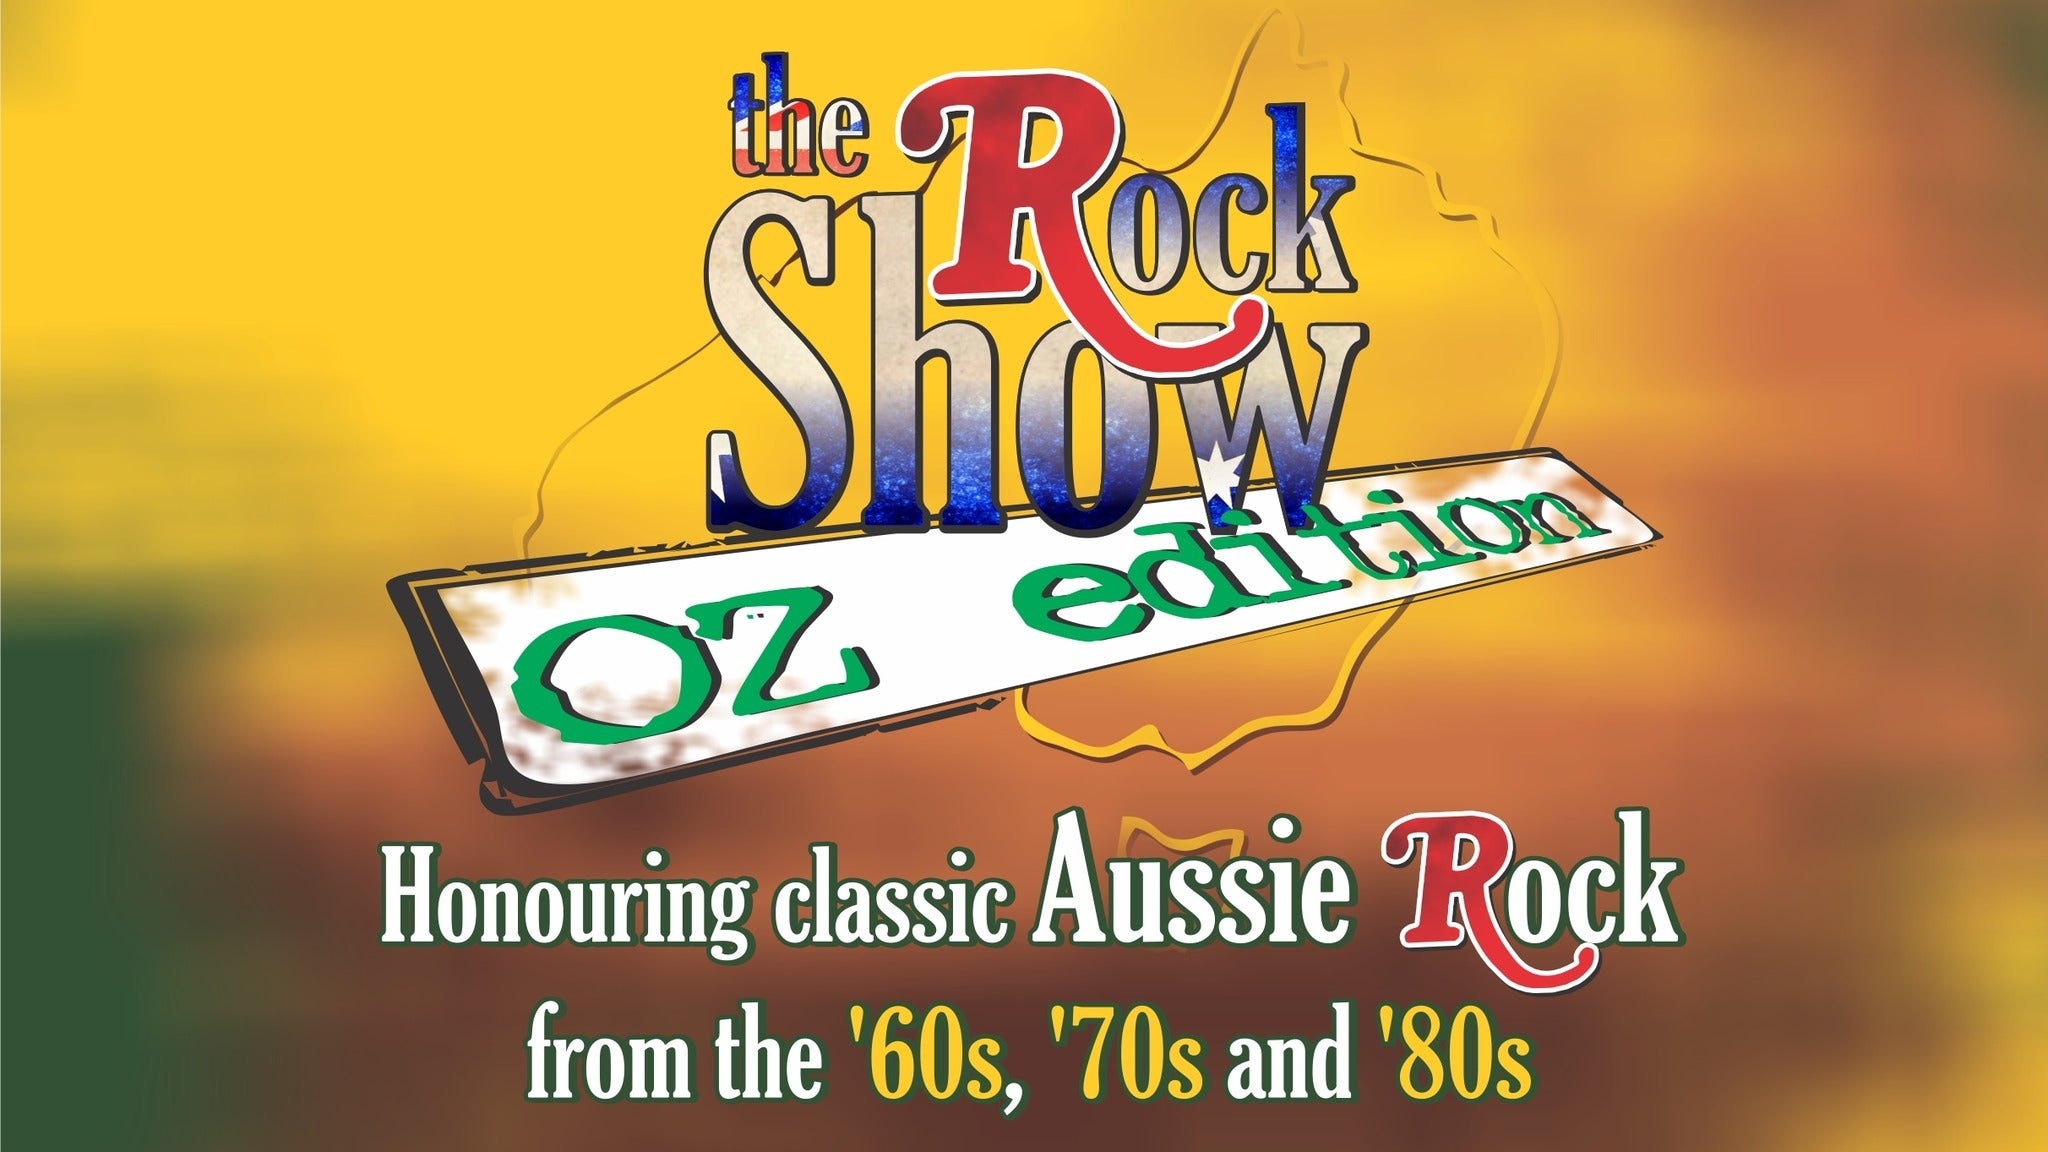 Image used with permission from Ticketmaster | The Rock Show Oz Edition tickets